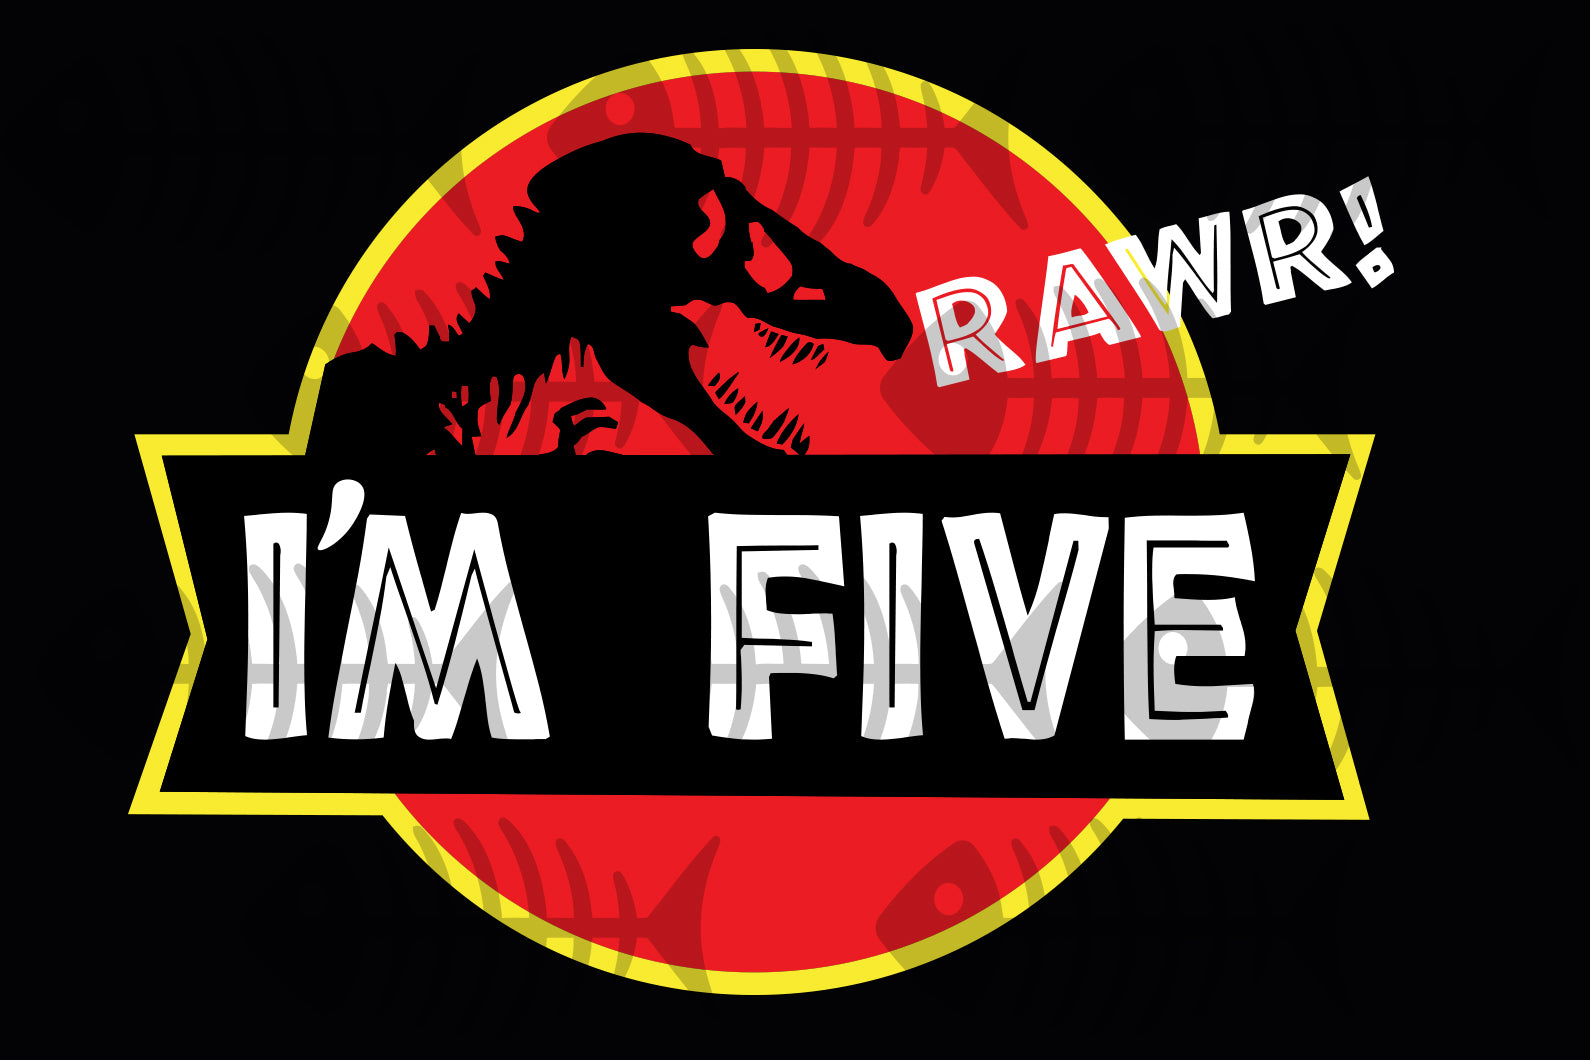 I am five rawr,dinosaur svg,birthday svg,birthday boy svg,5st birthday,birthday anniversary,svg cut files, svg clipart, silhouette svg, cricut svg files, decal and vinyl